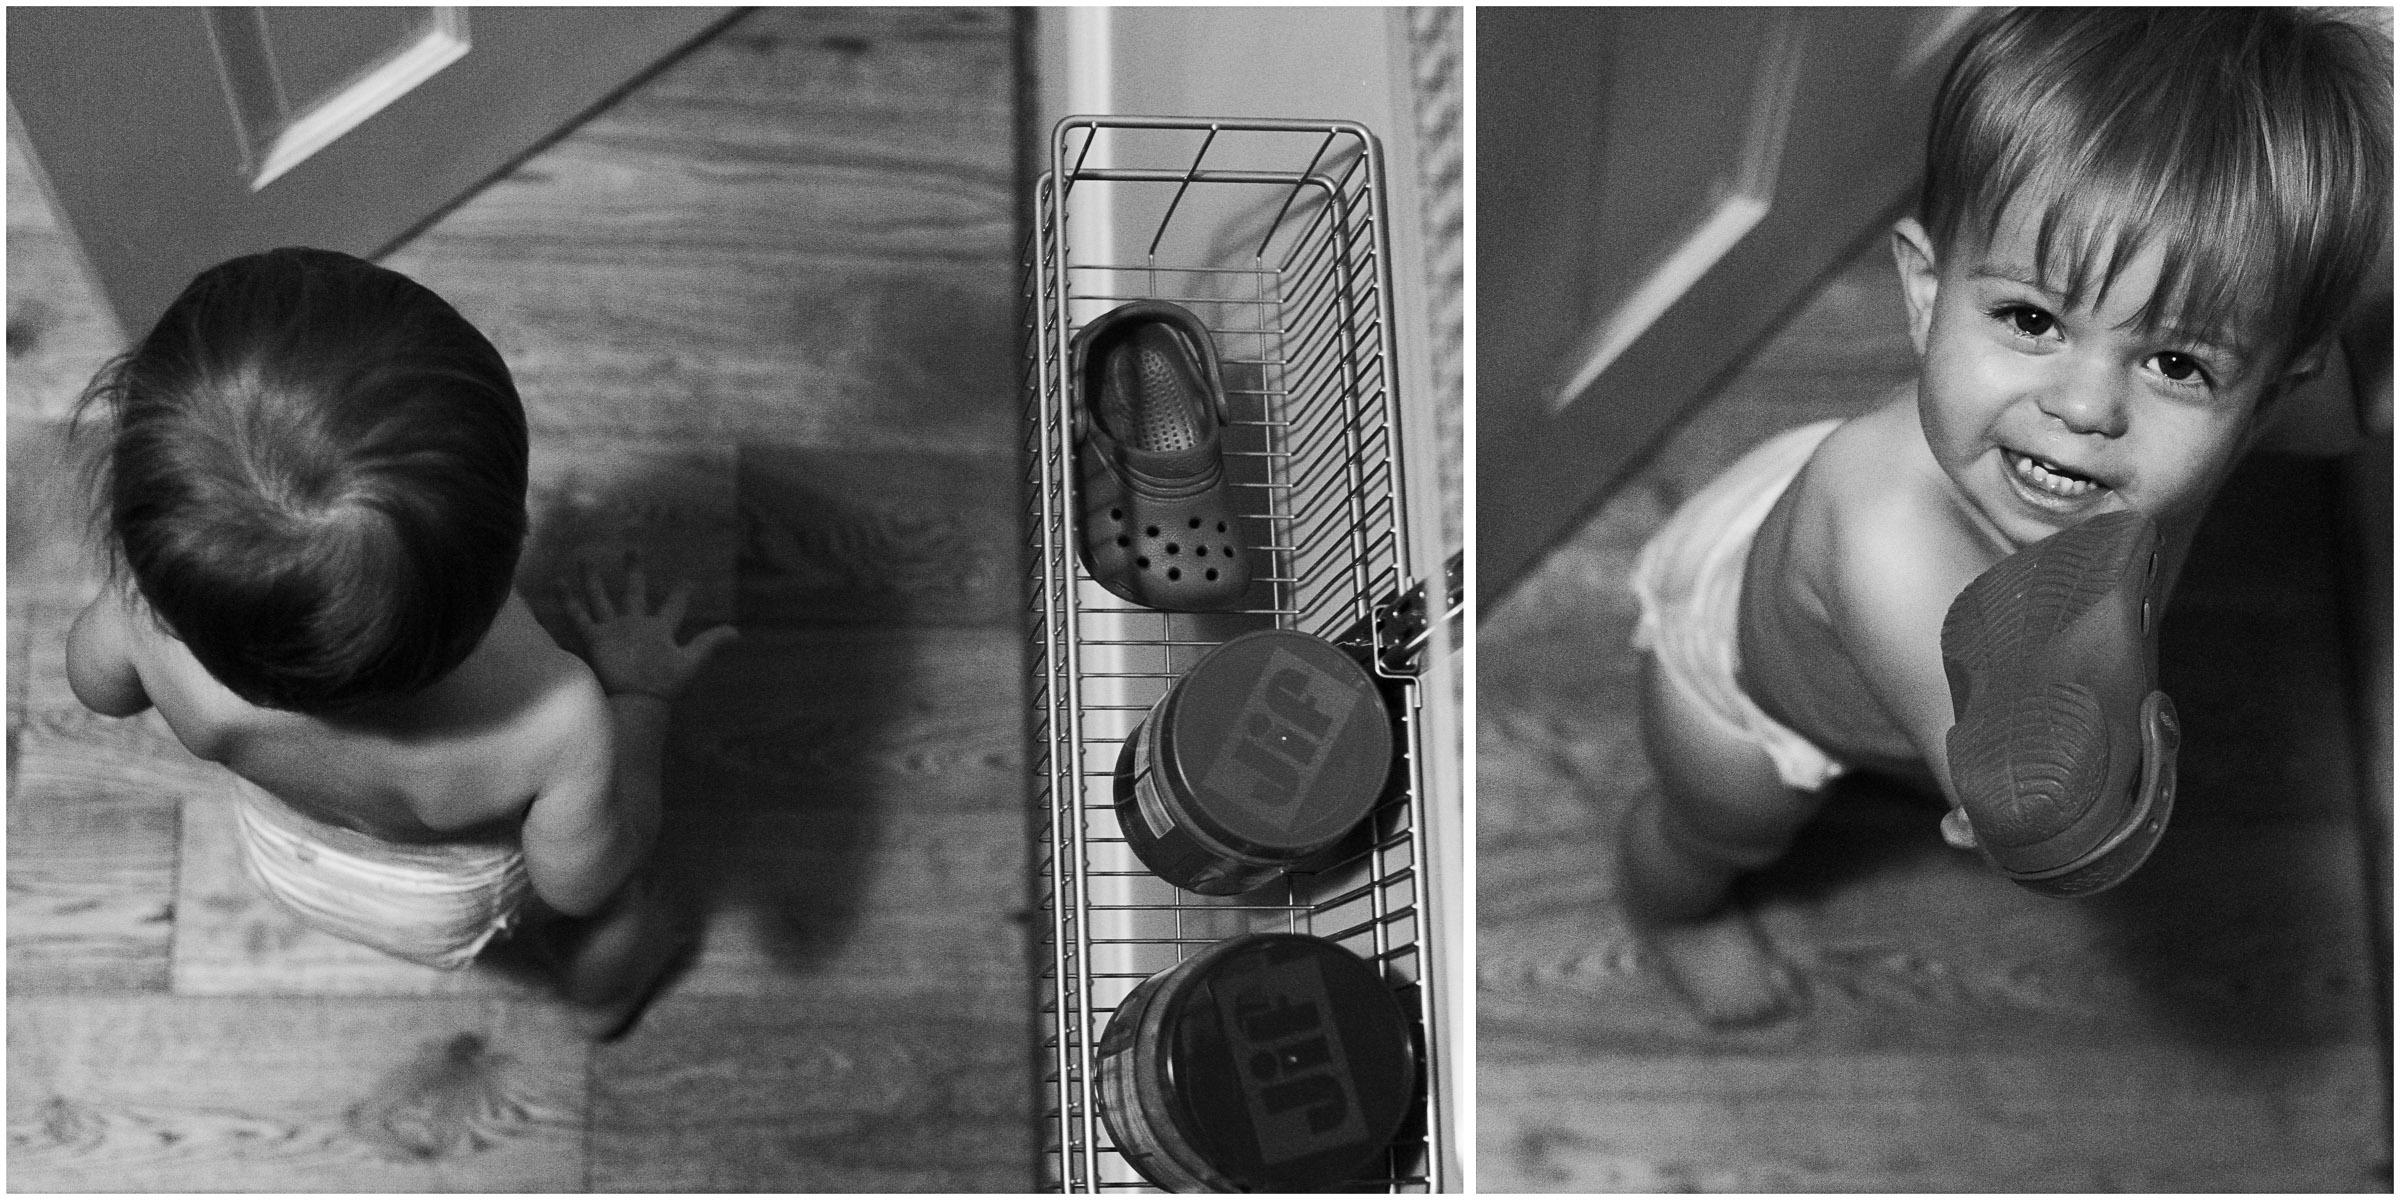 The peanut butter morning snack lead to a naked baby. And me putting away the peanut butter lead to the shoe we couldn't find last night. I invited Henry to come in and see if he could find it, too.